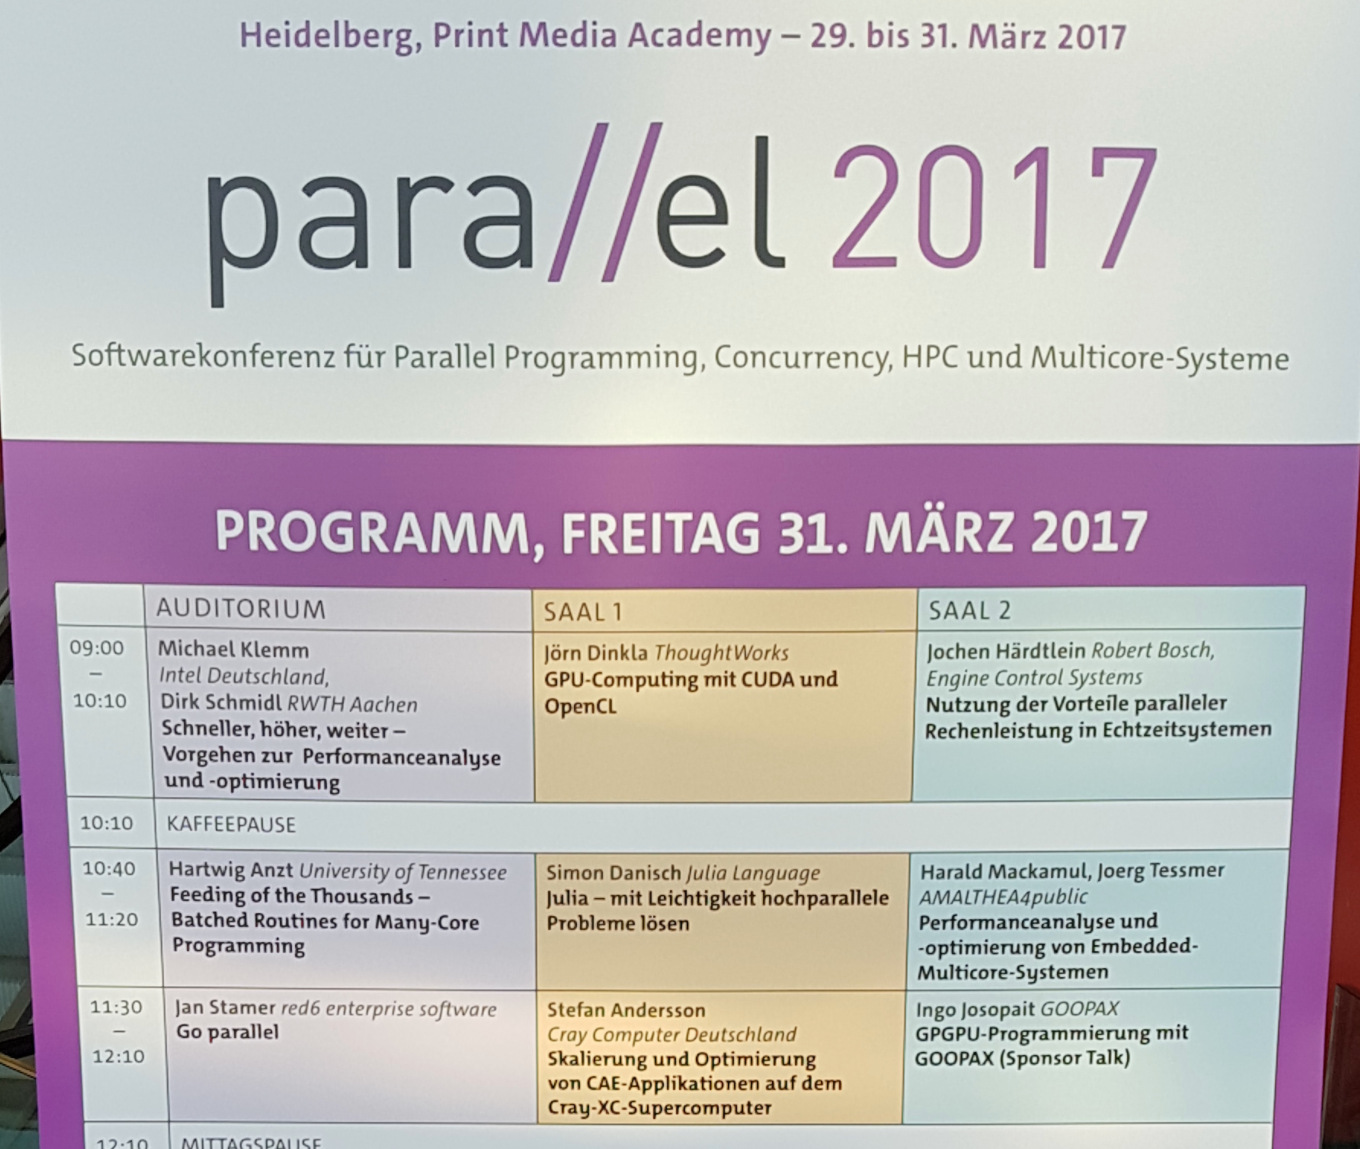 Program of the parallel 2017